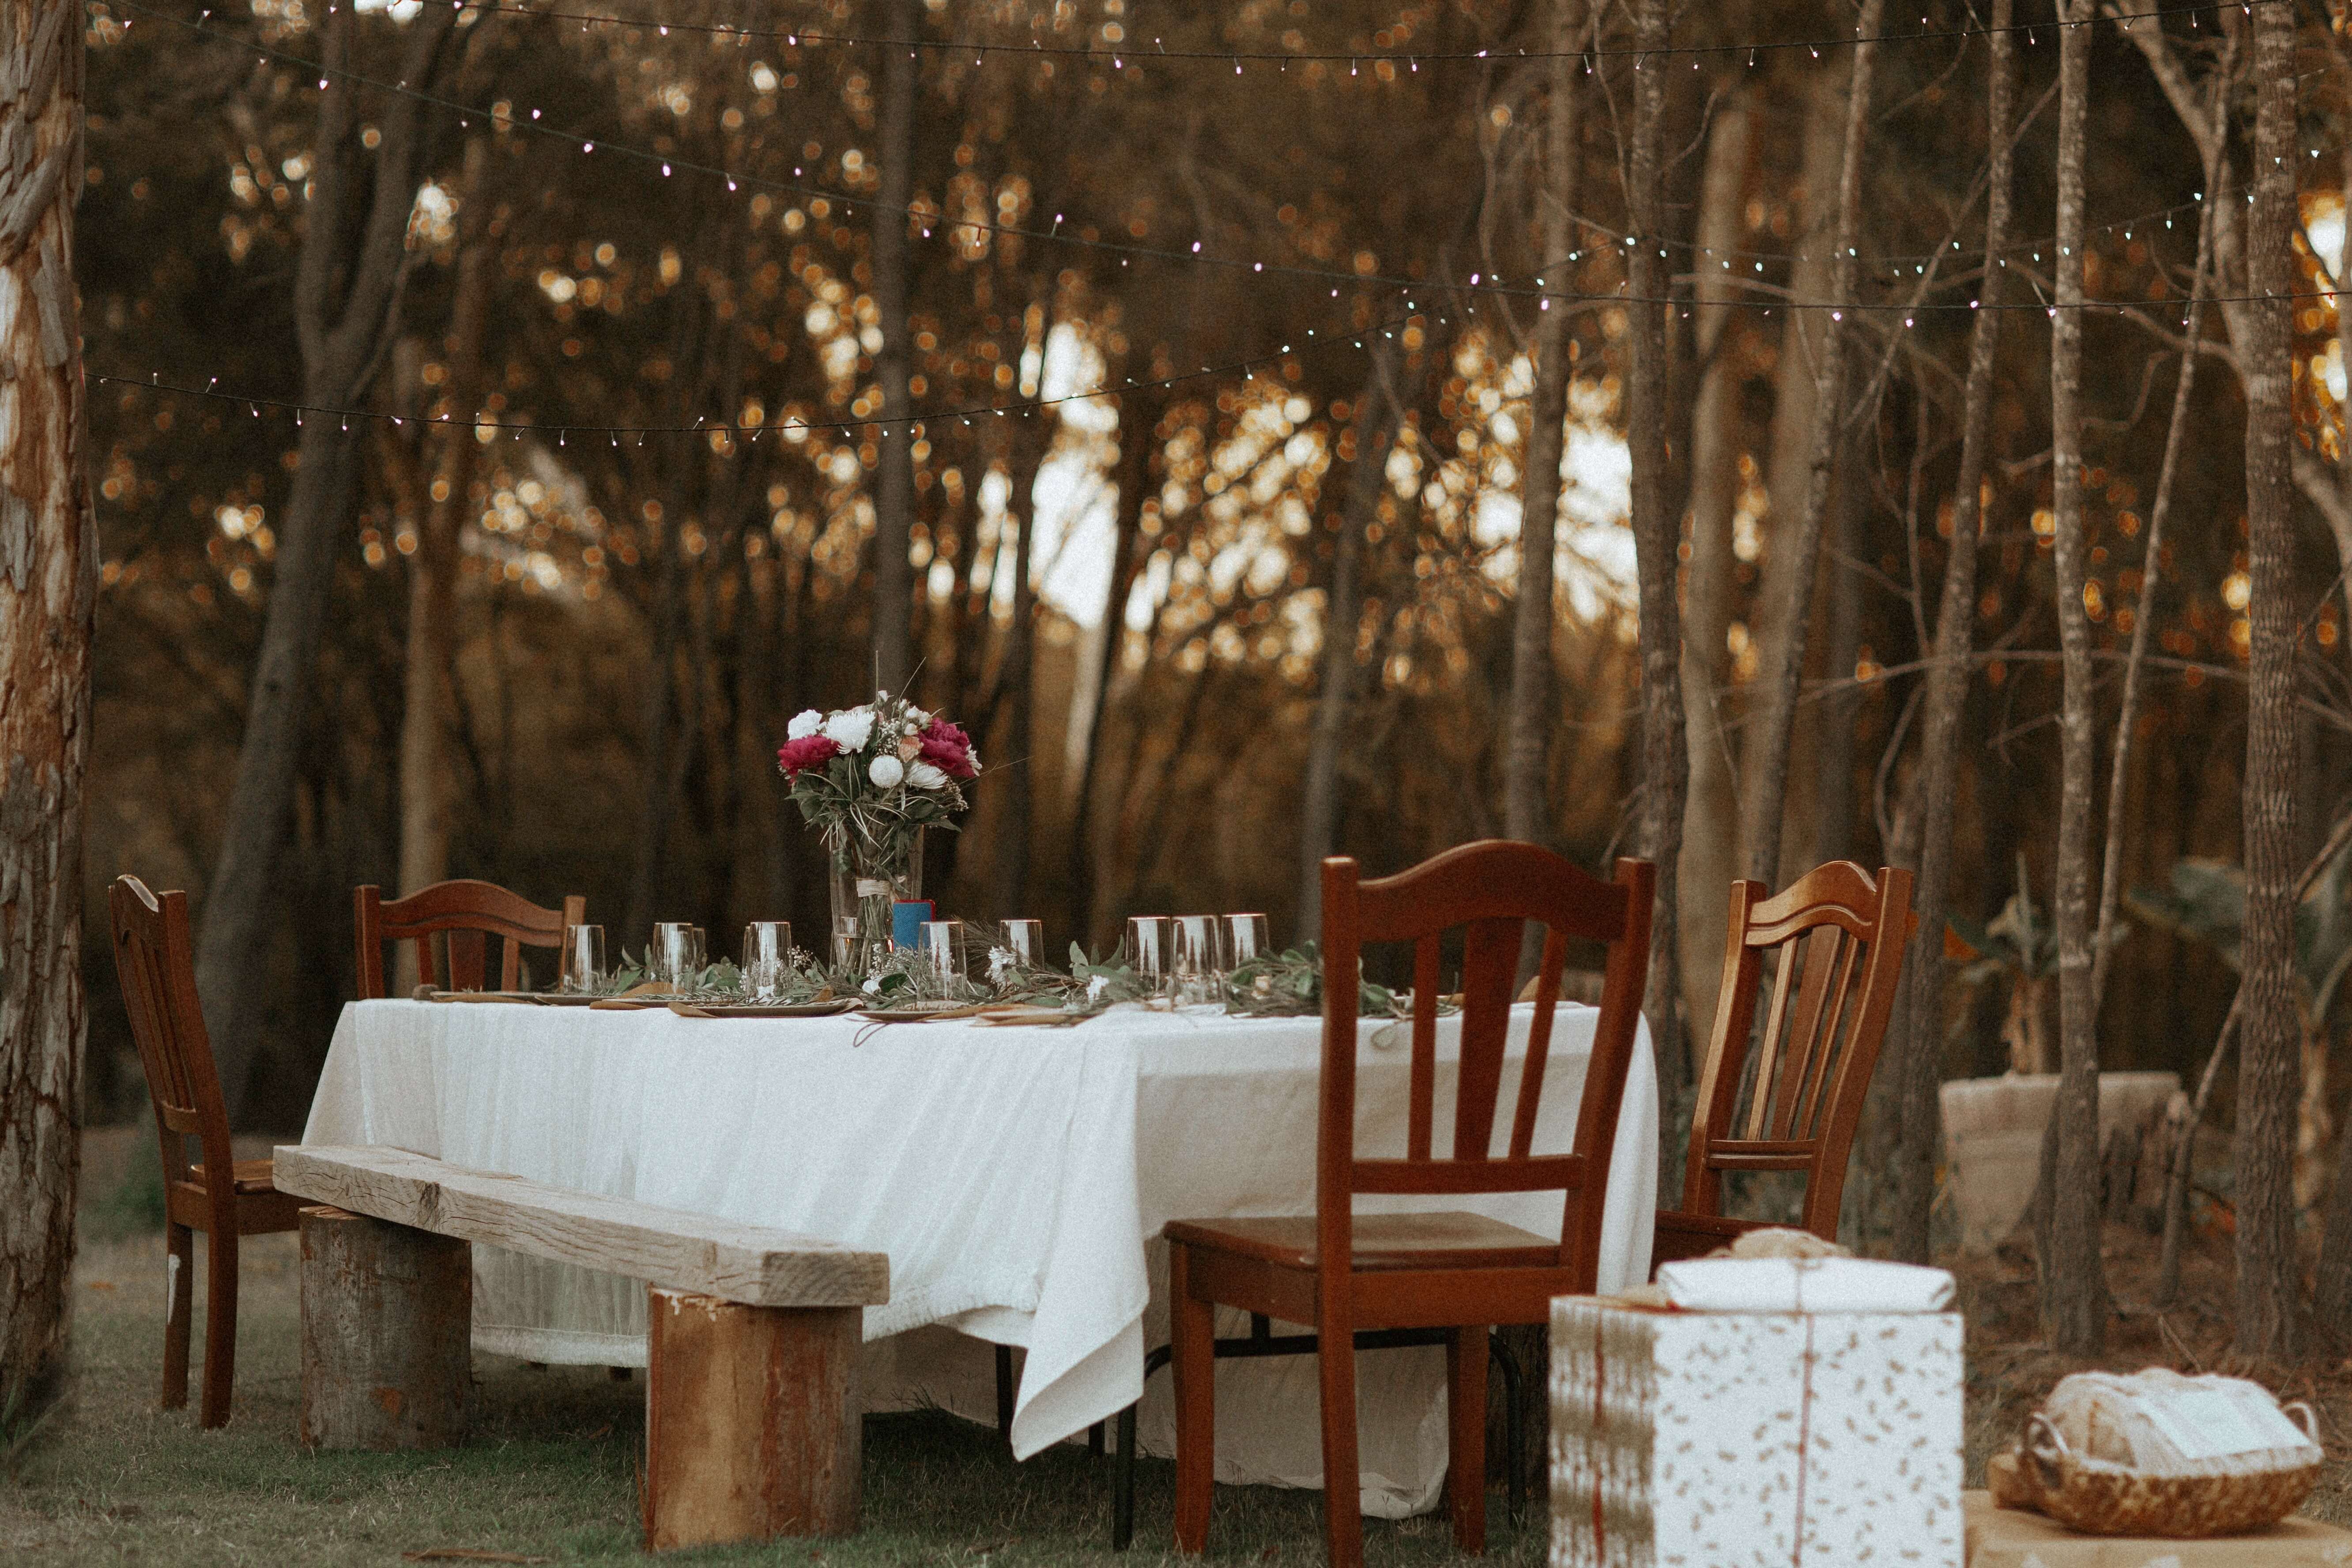 Table set up in the woods under fairy lights